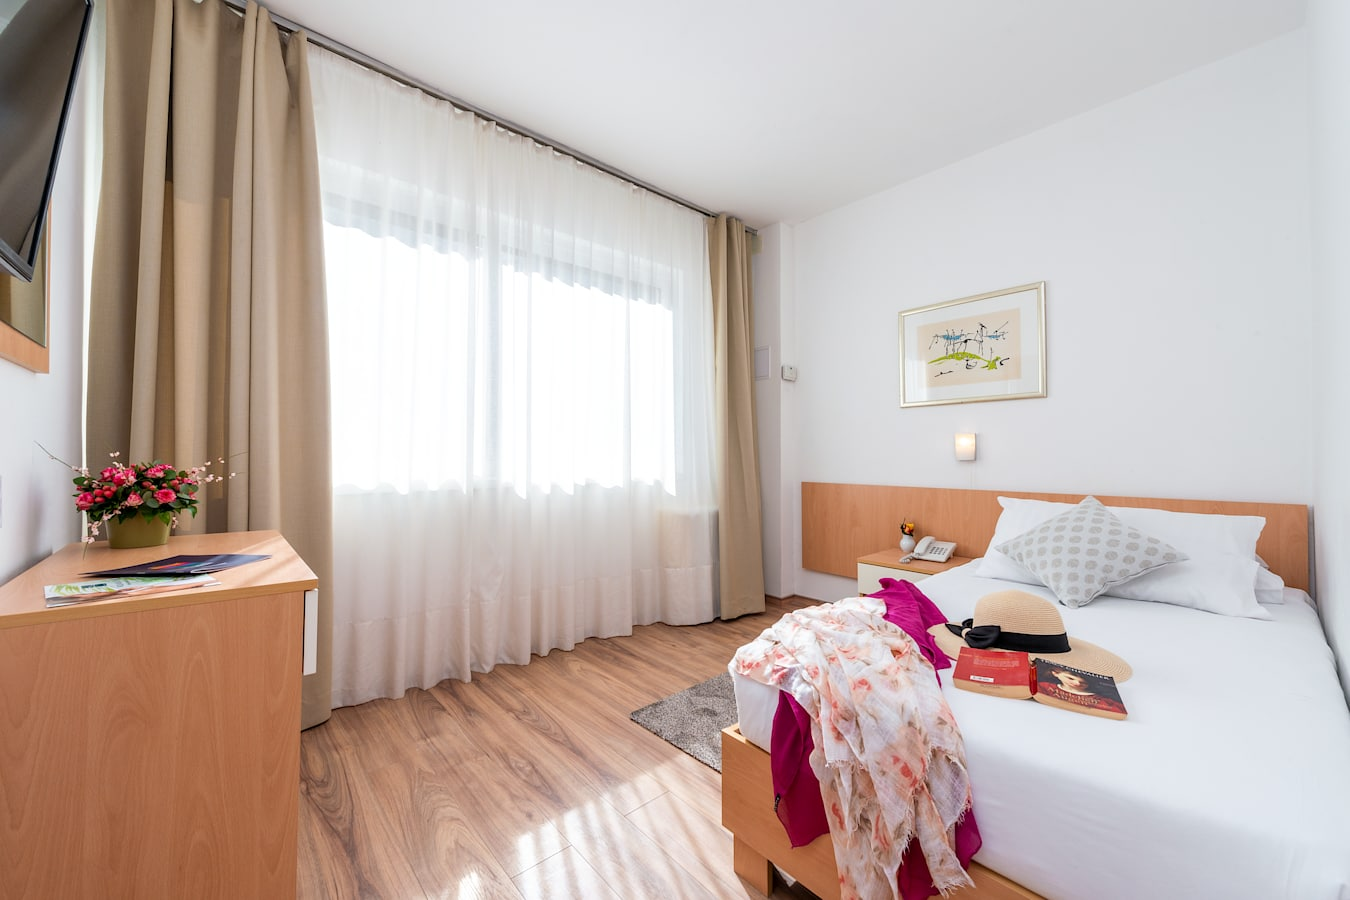 adriatic-hotel-single-room-dubrovnik.jpg